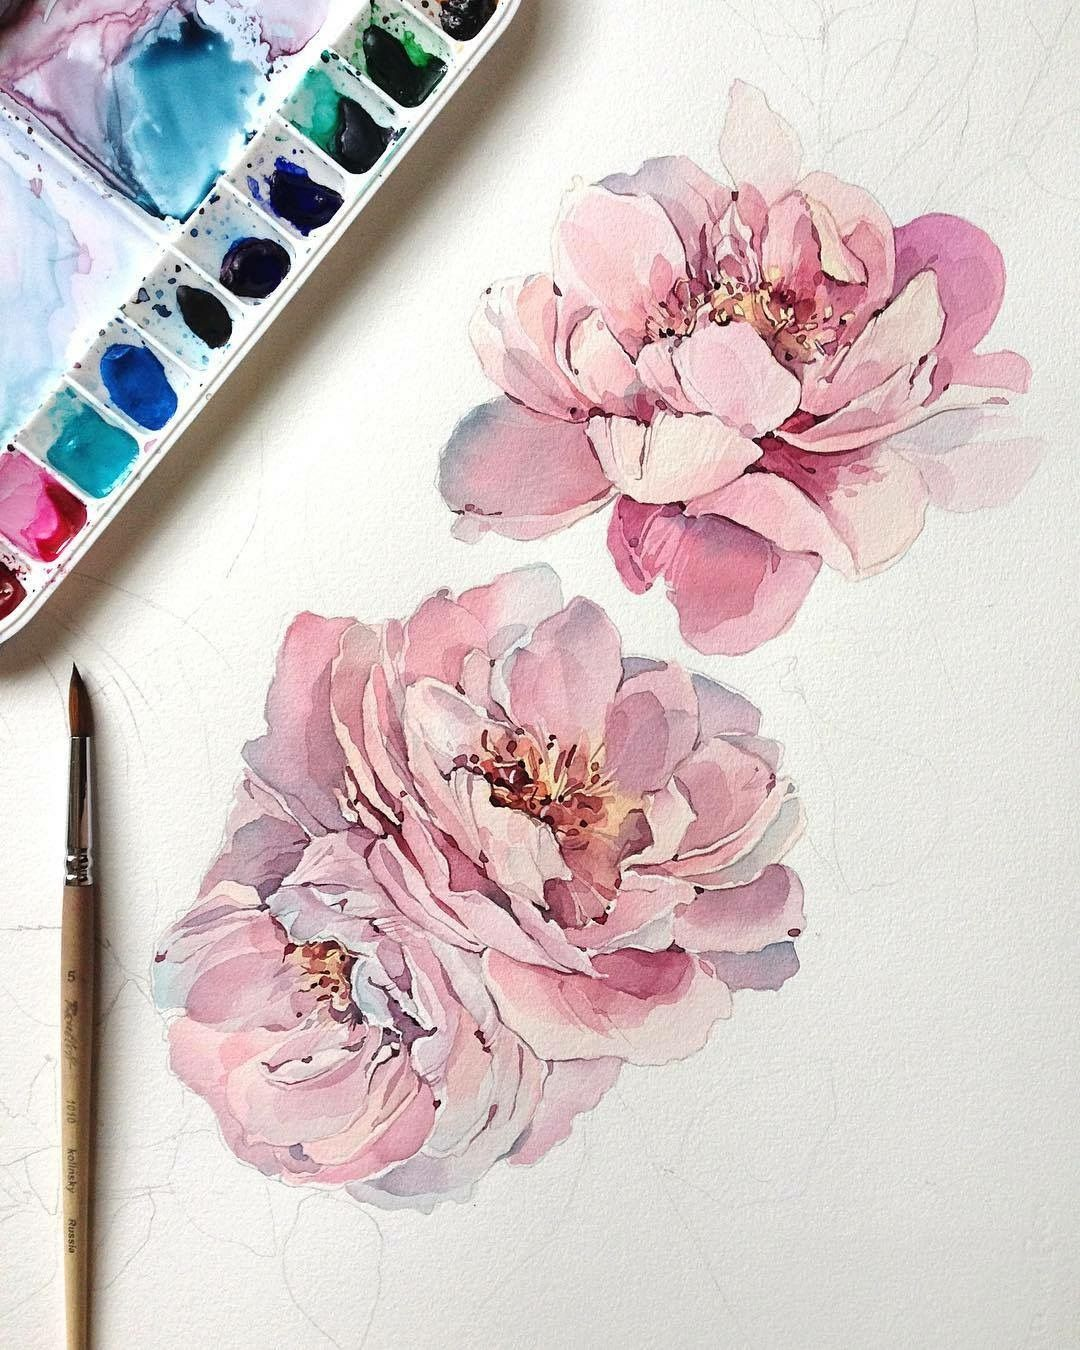 Pin By Margarita On My Pinterest Likes Watercolor Illustration